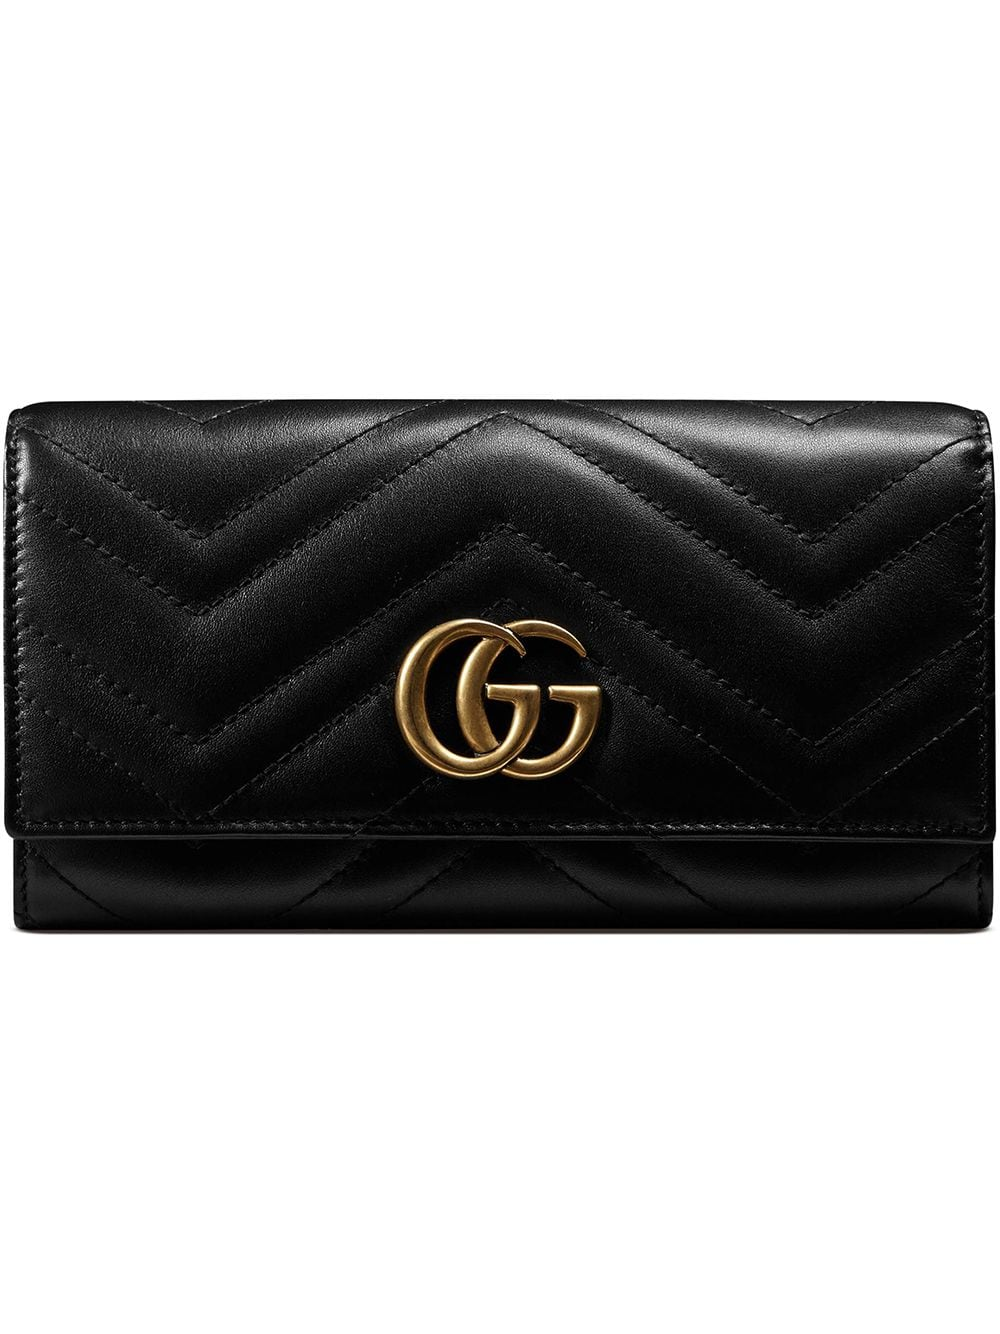 Gucci GG Marmont Continental Wallet 1270лв